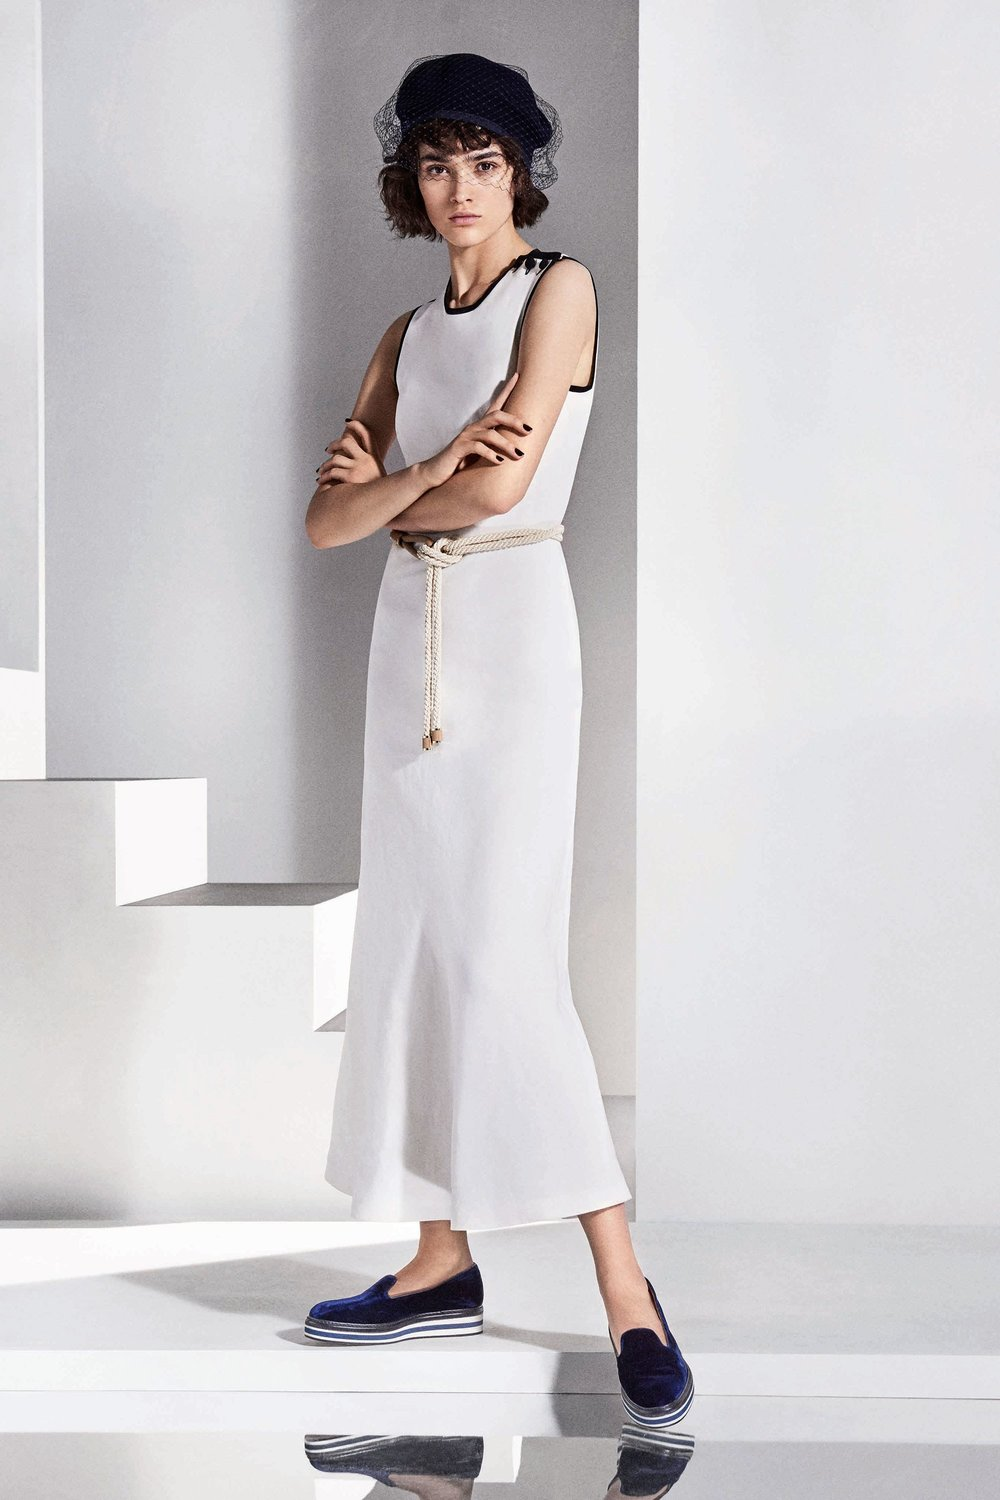 25-Max-Mara-Resort-18.jpg